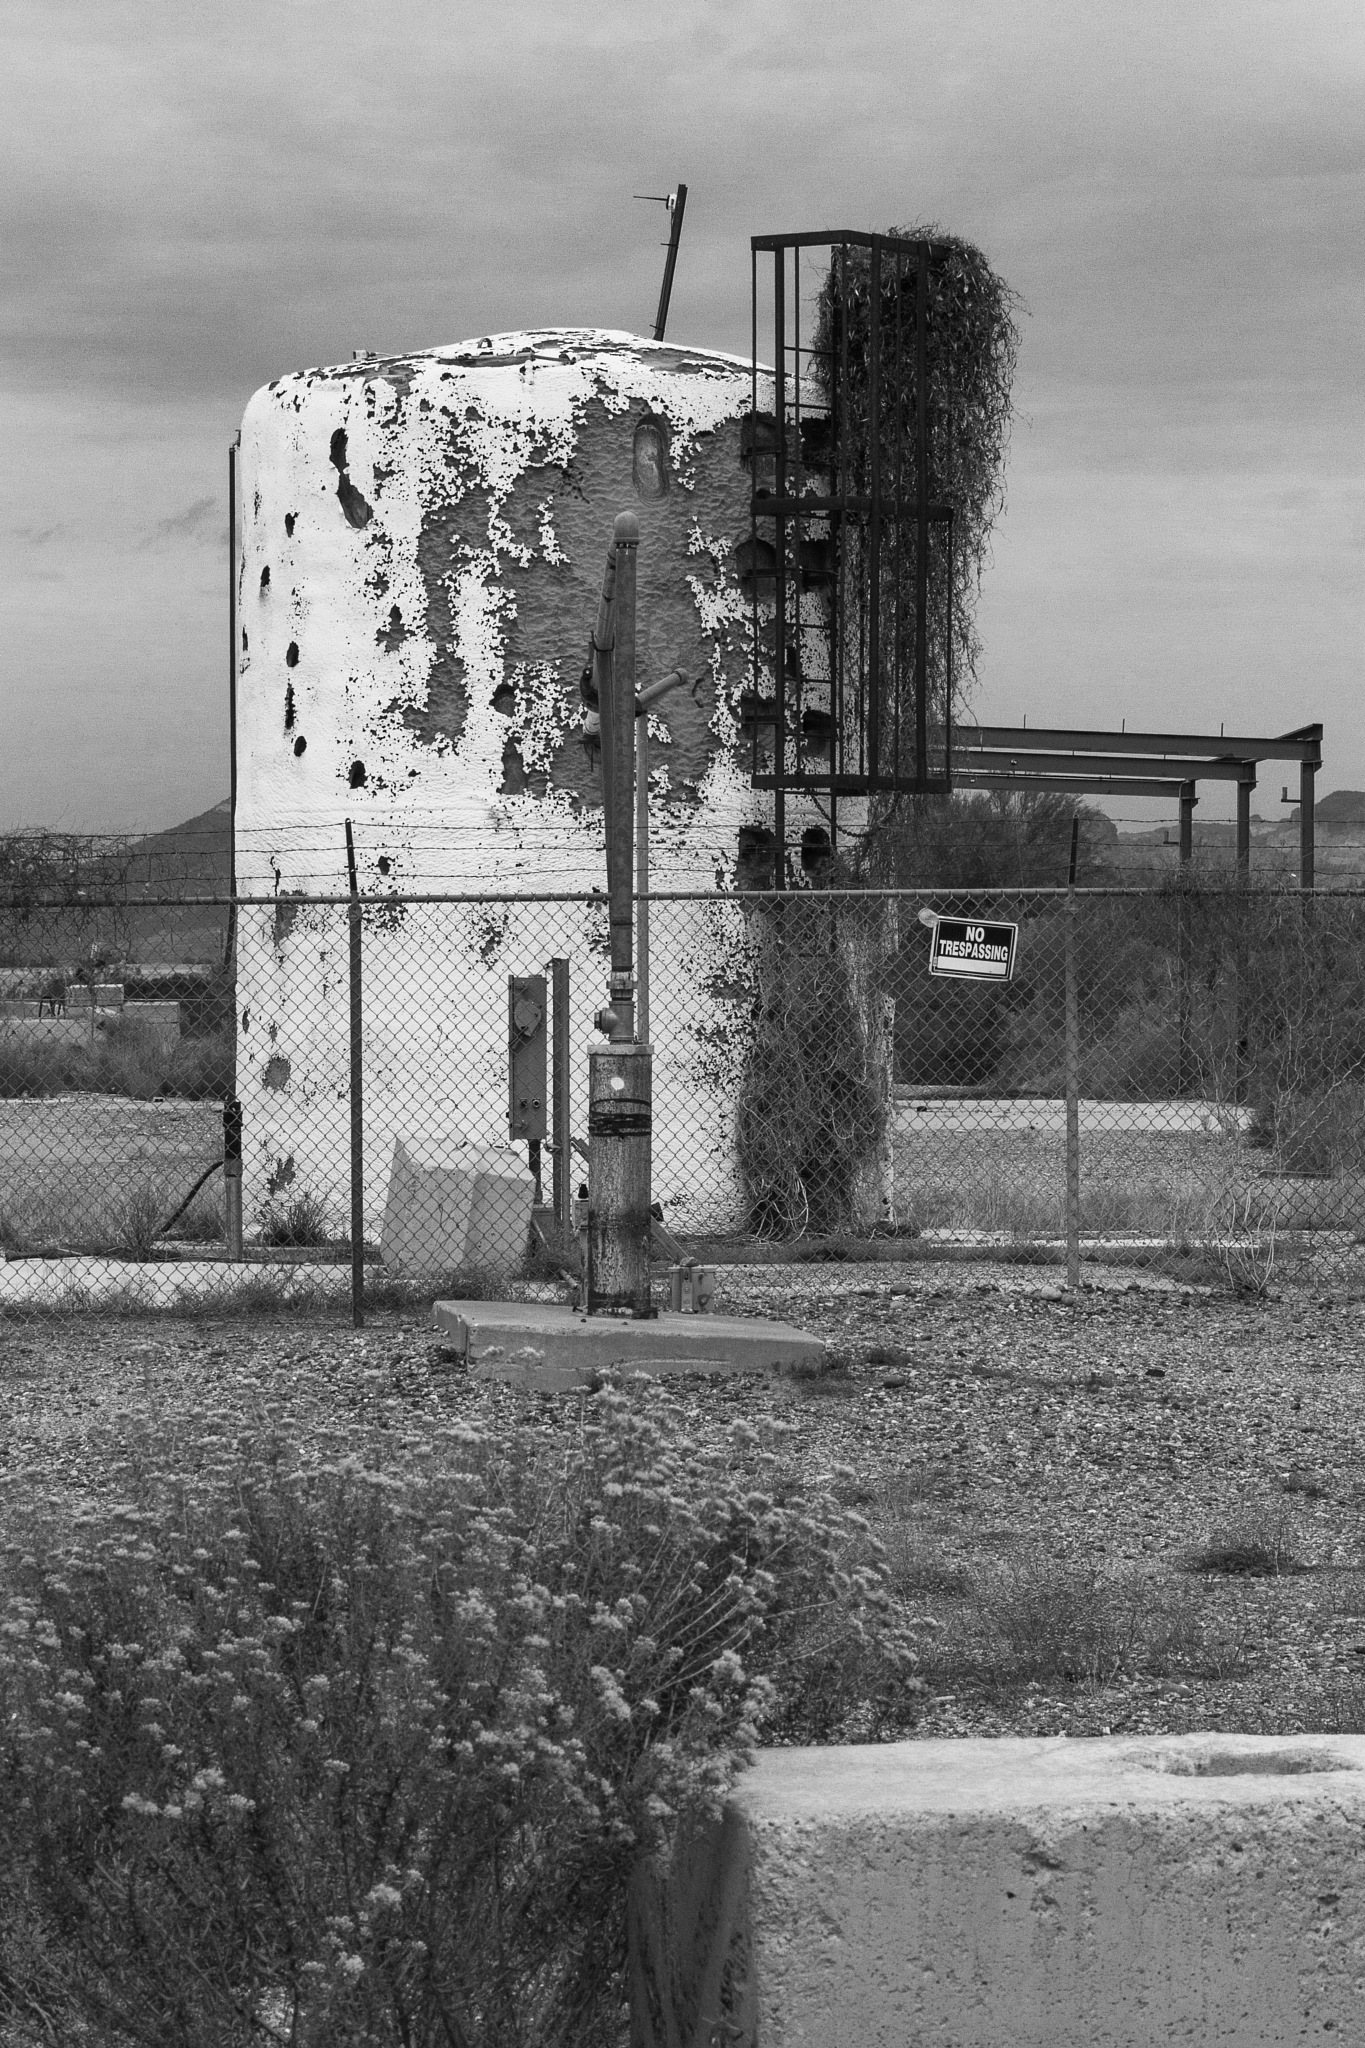 Abandoned Gravel Pit - Tank by kmcolbourn